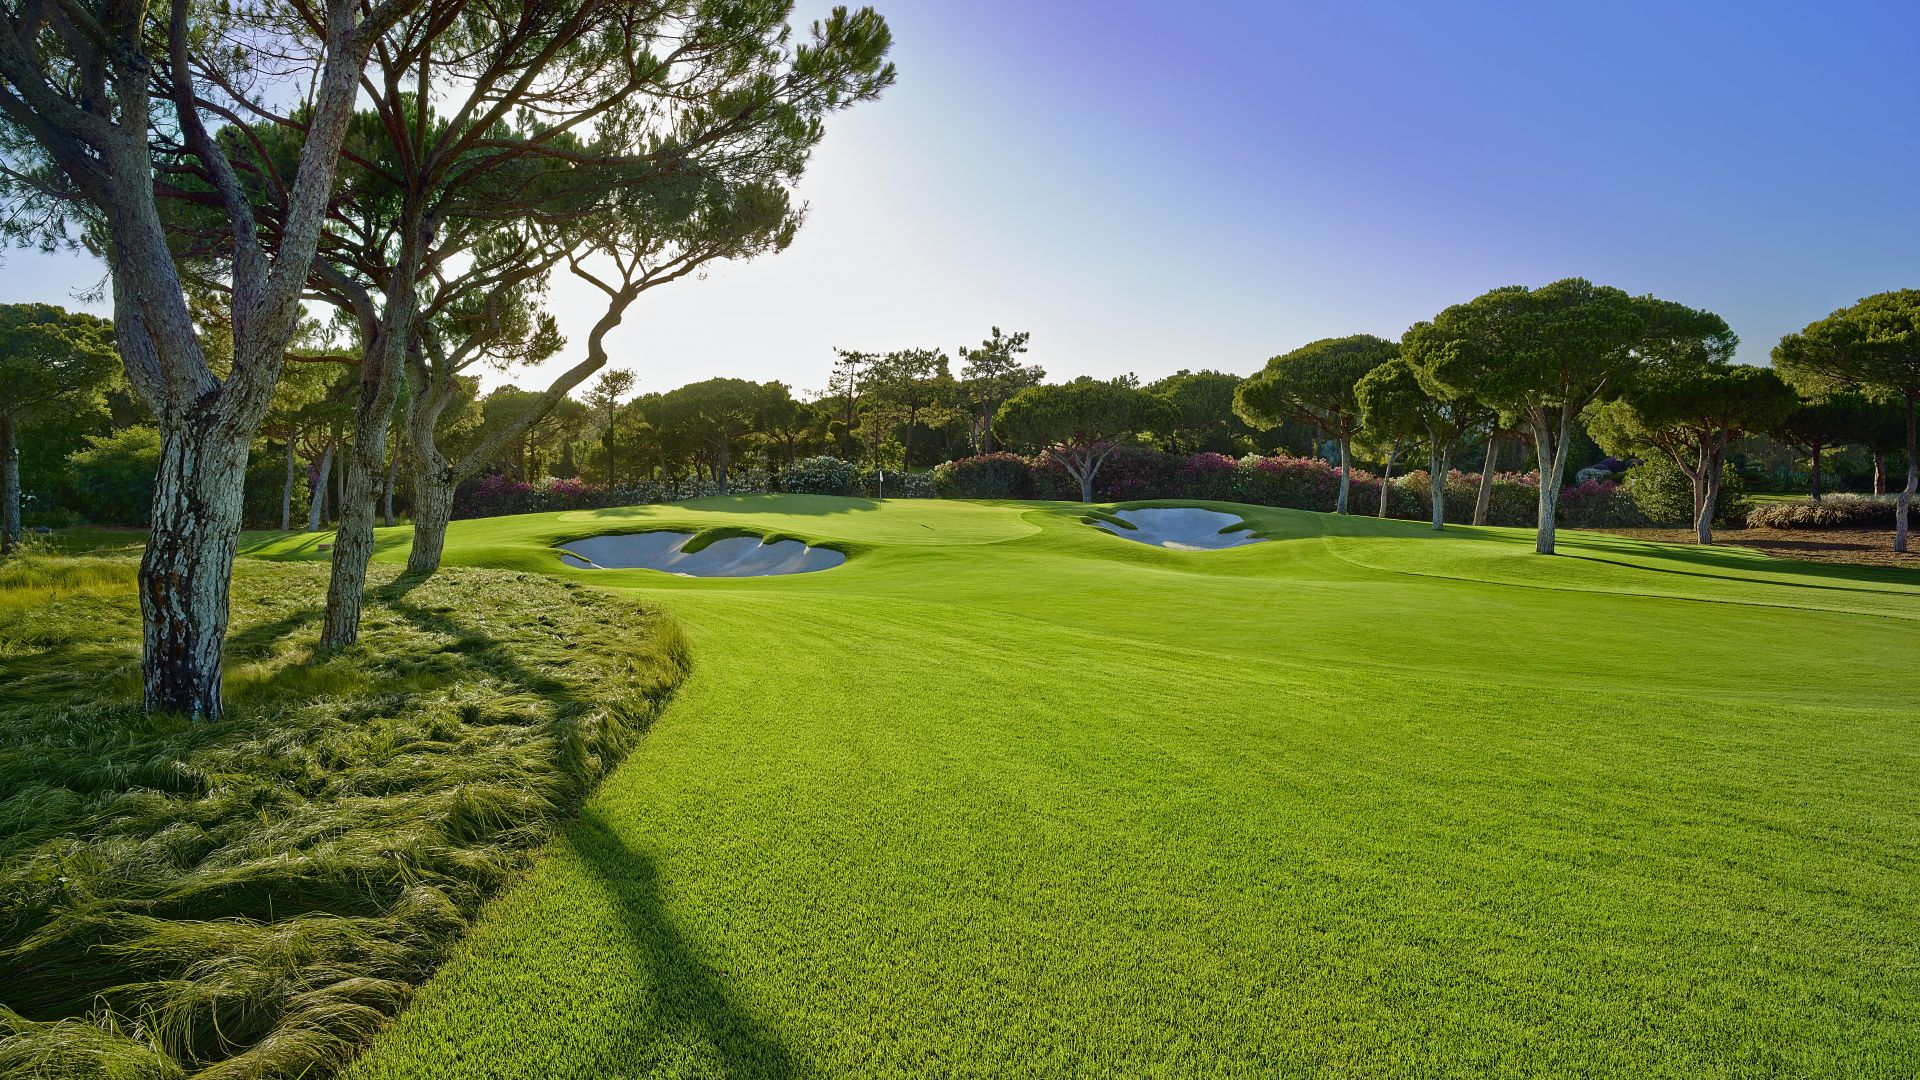 Quinta do Lago North, 5k, 4k wallpaper, 8k, HD, Algarve, Portugal, travel, tourism (horizontal)